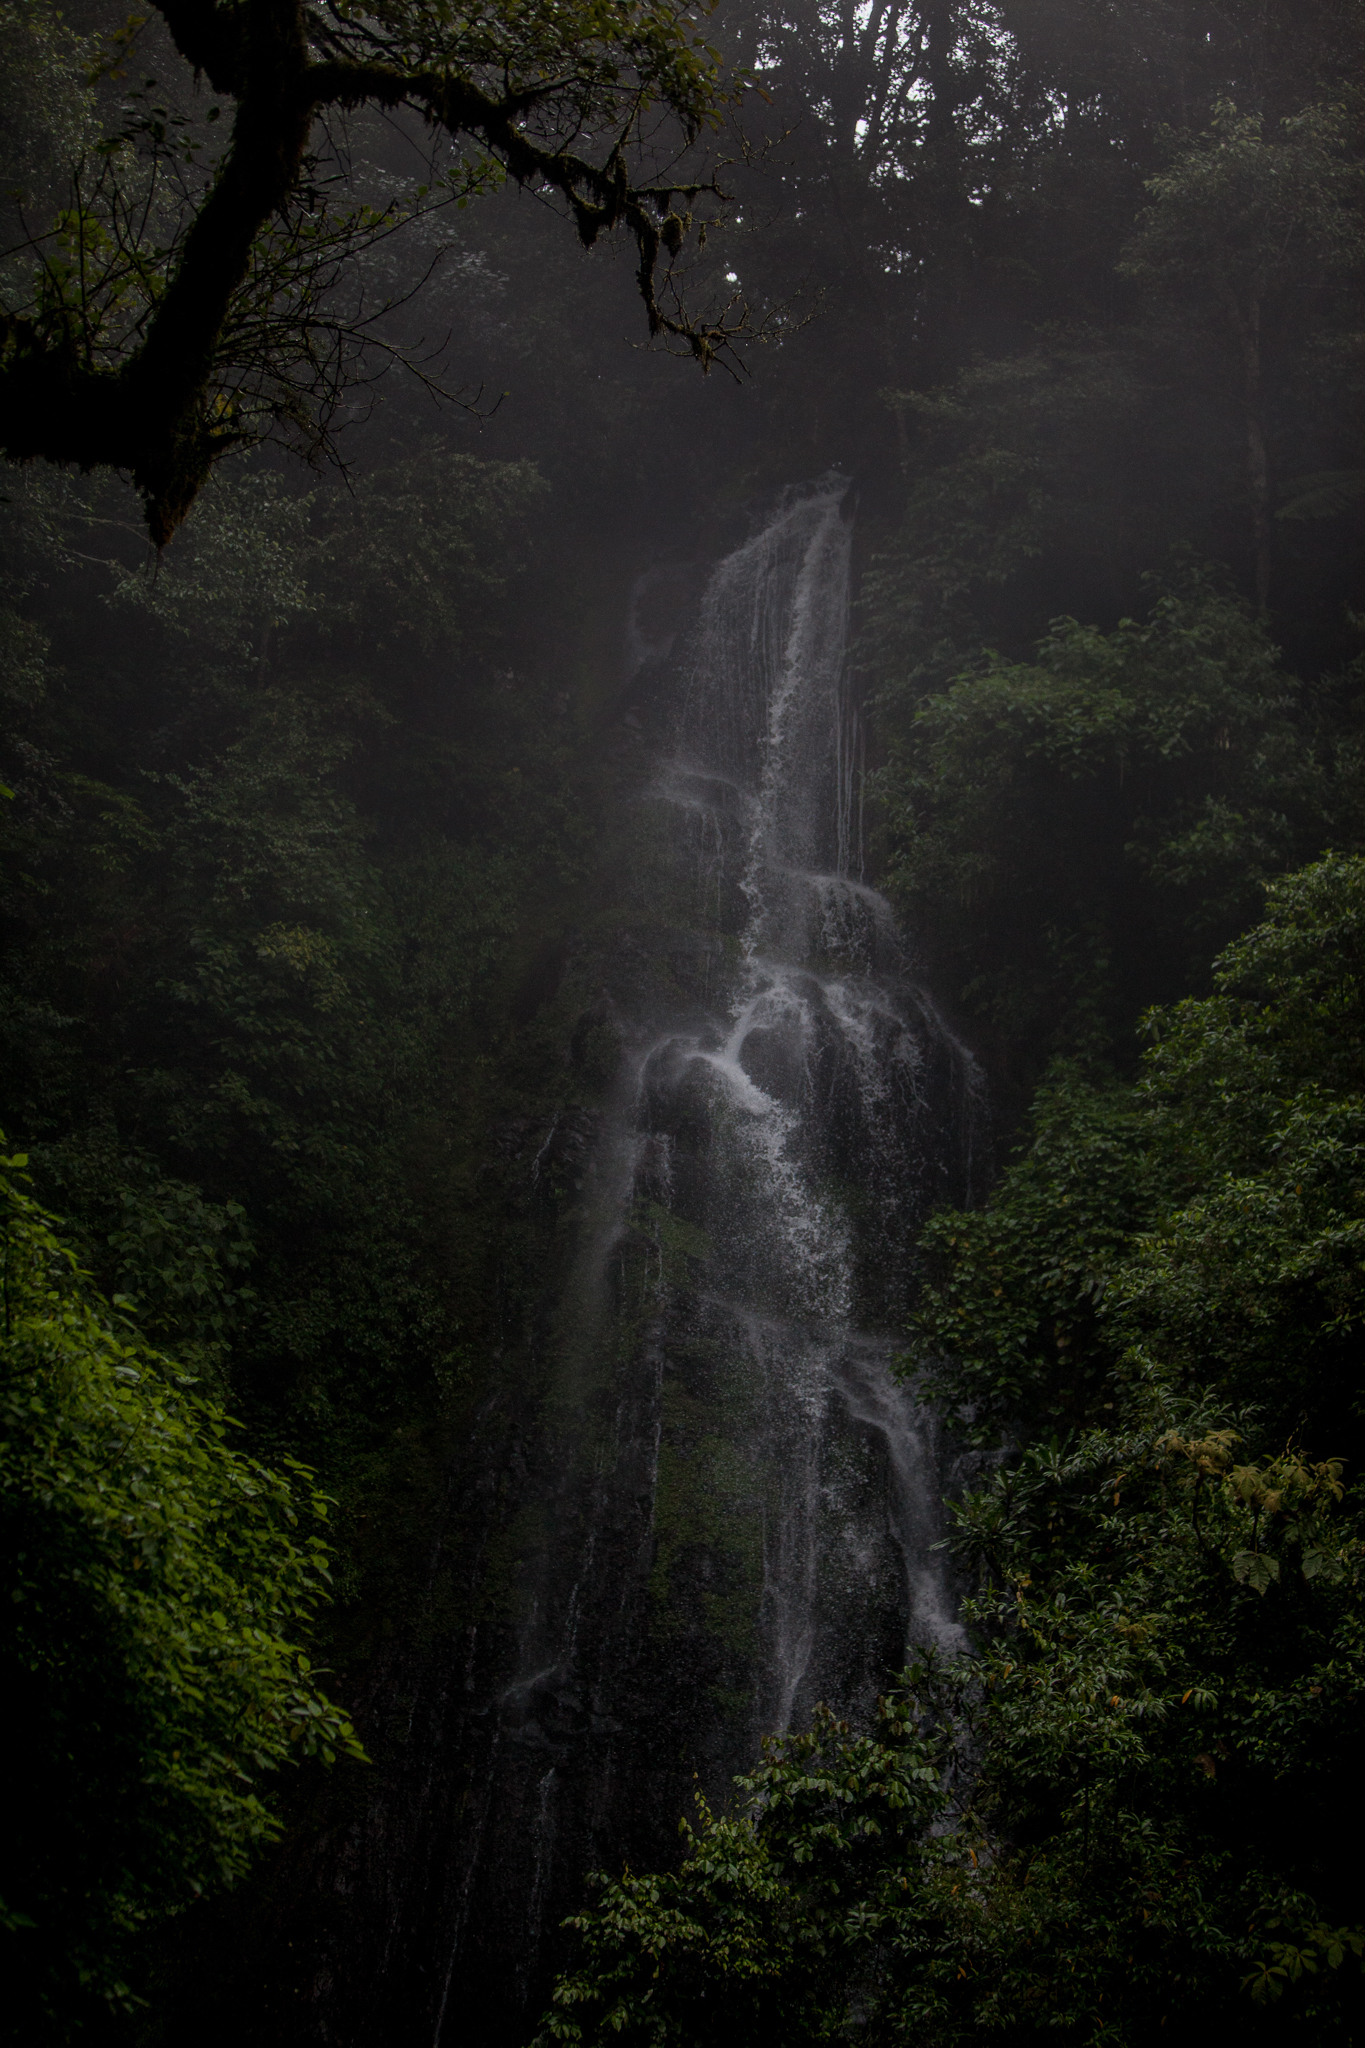 This waterfall in Veracruz, Mexico illustrates the role that cloud forests play in producing fresh water for communities downslope.